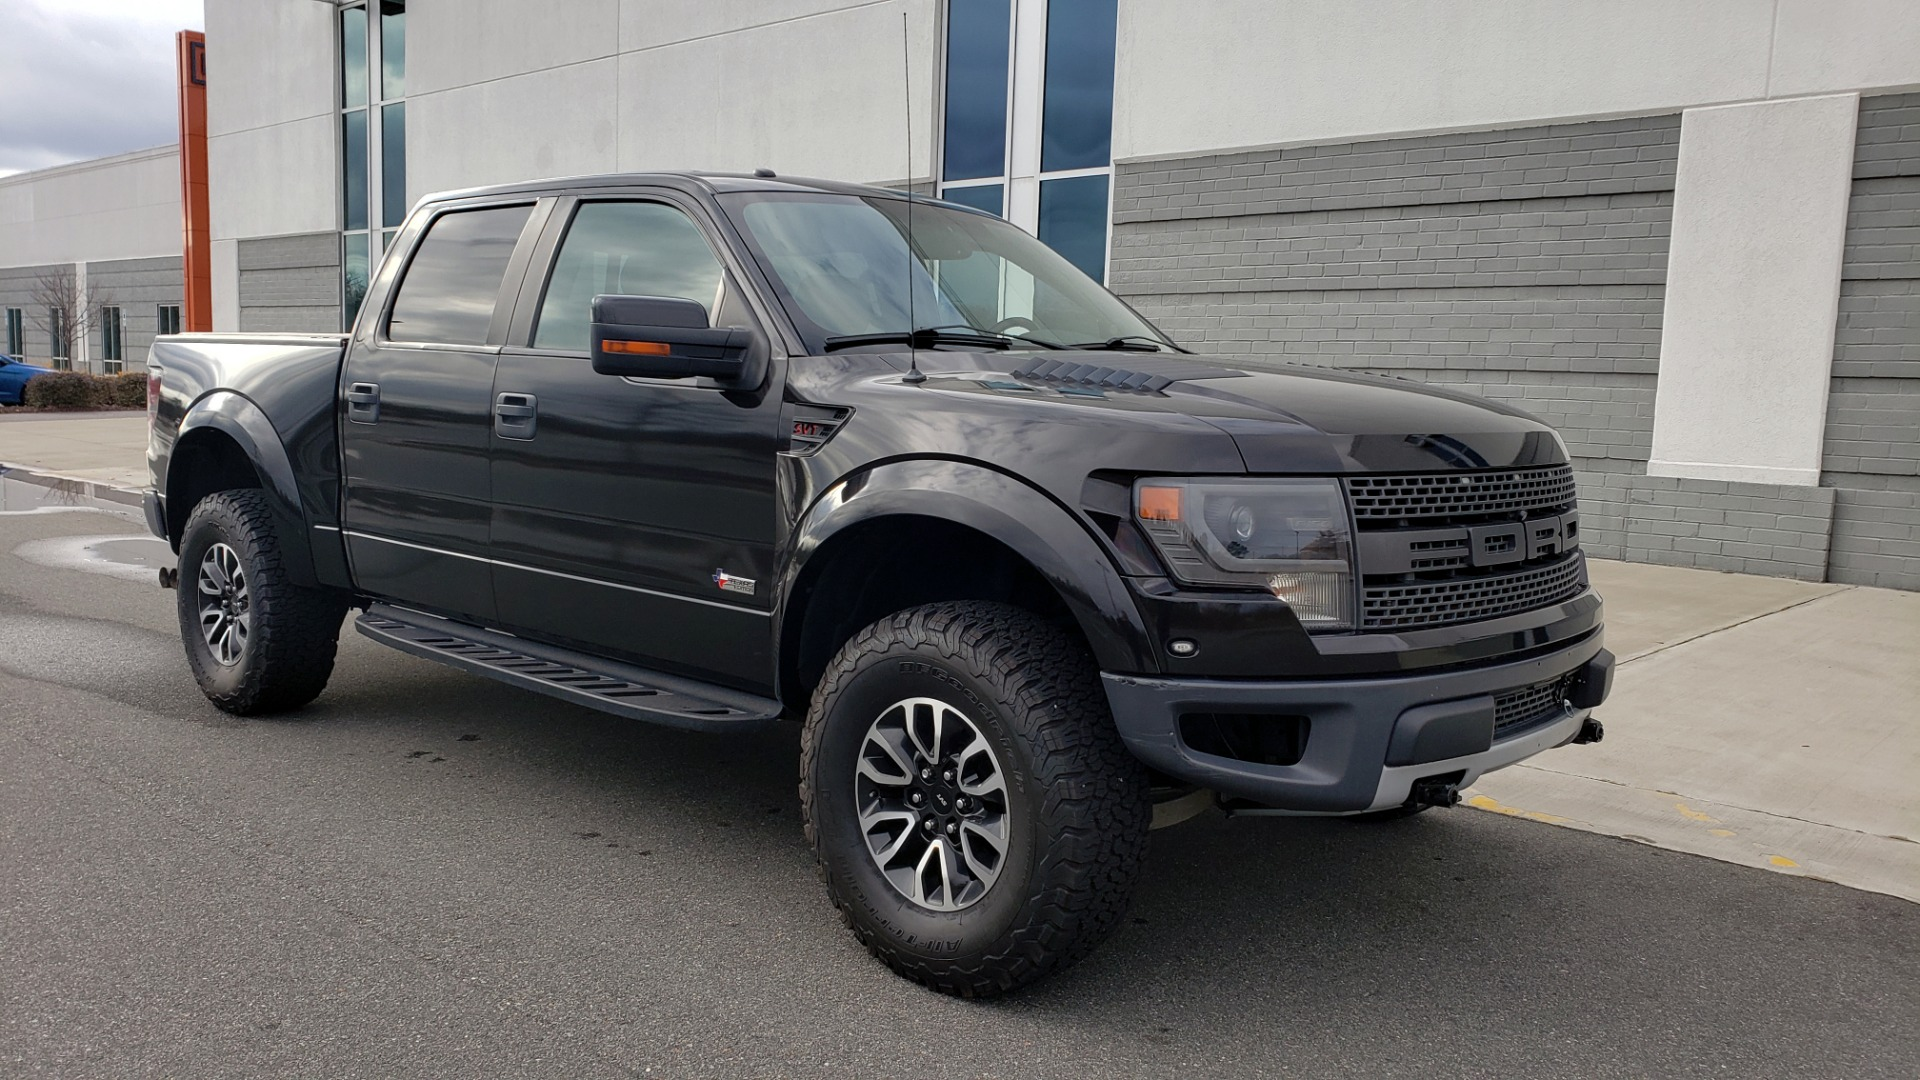 Used 2013 Ford F-150 SVT RAPTOR 4X4 SUPERCREW / 6.2L V8 / 6-SPD AUTO / NAV / LUX PKG for sale Sold at Formula Imports in Charlotte NC 28227 6